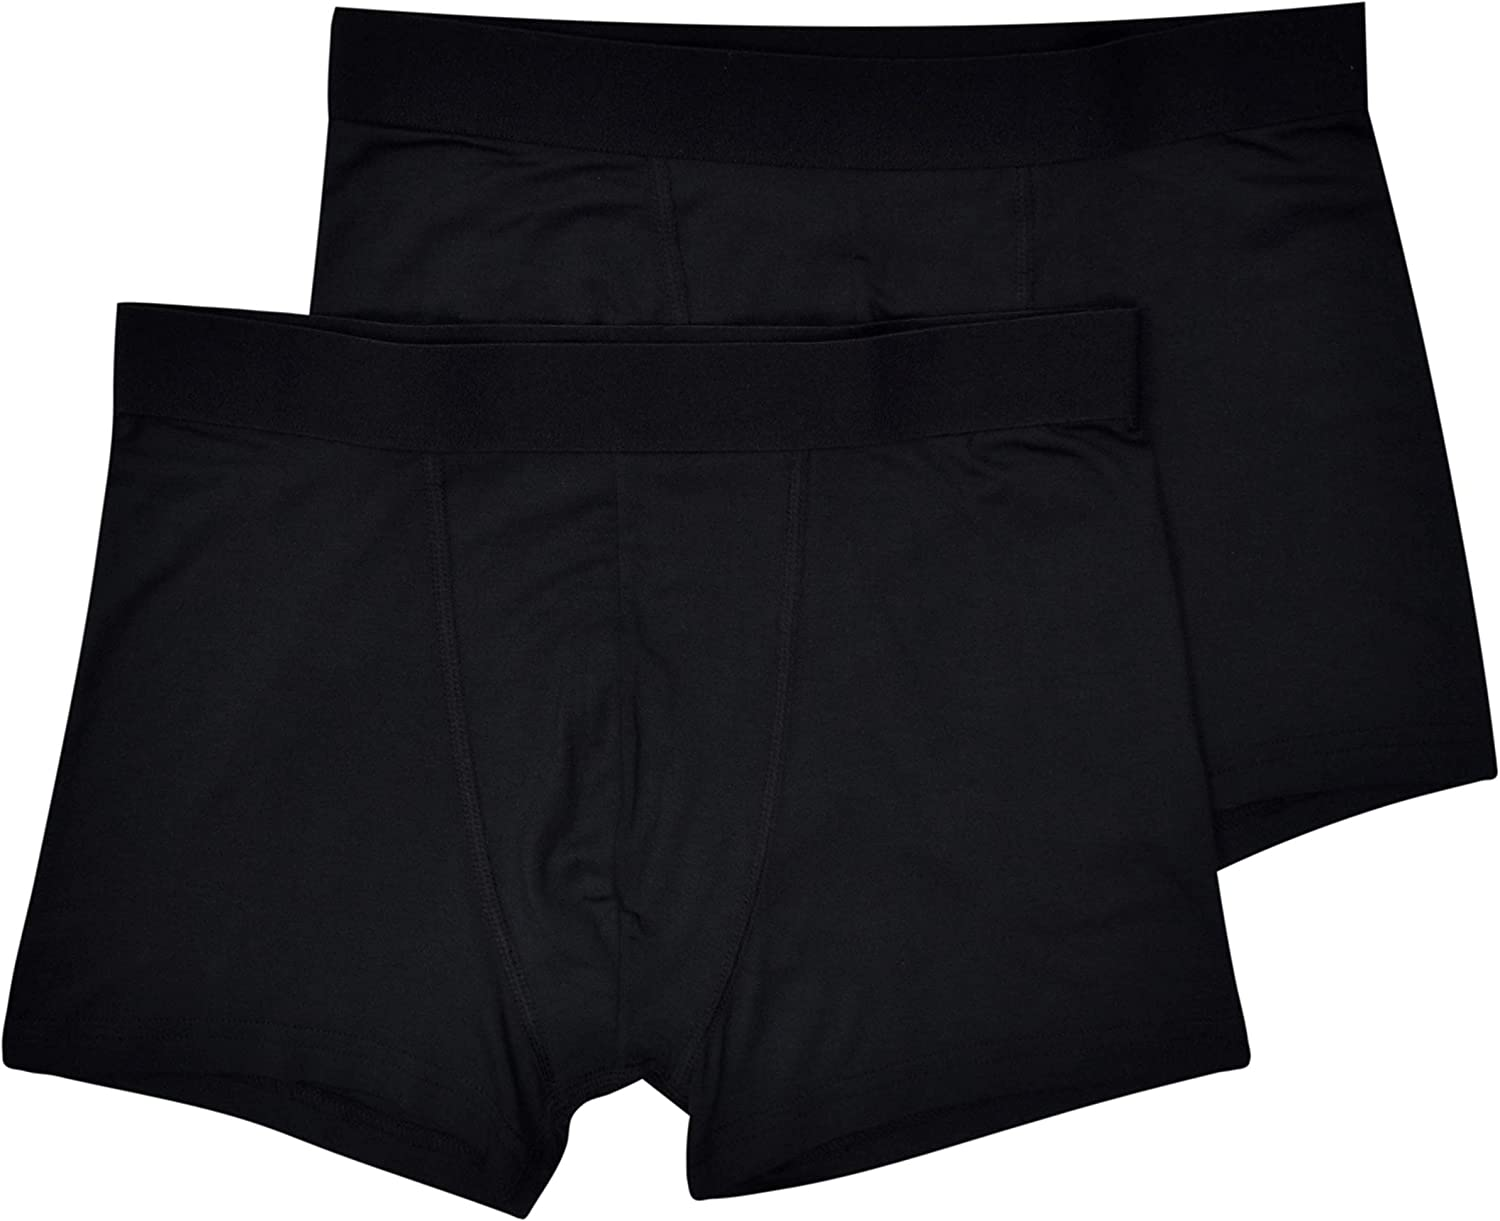 Bread and Boxers Daily Basics Boxer Brief 2 Pack Micro Modal Style 2006